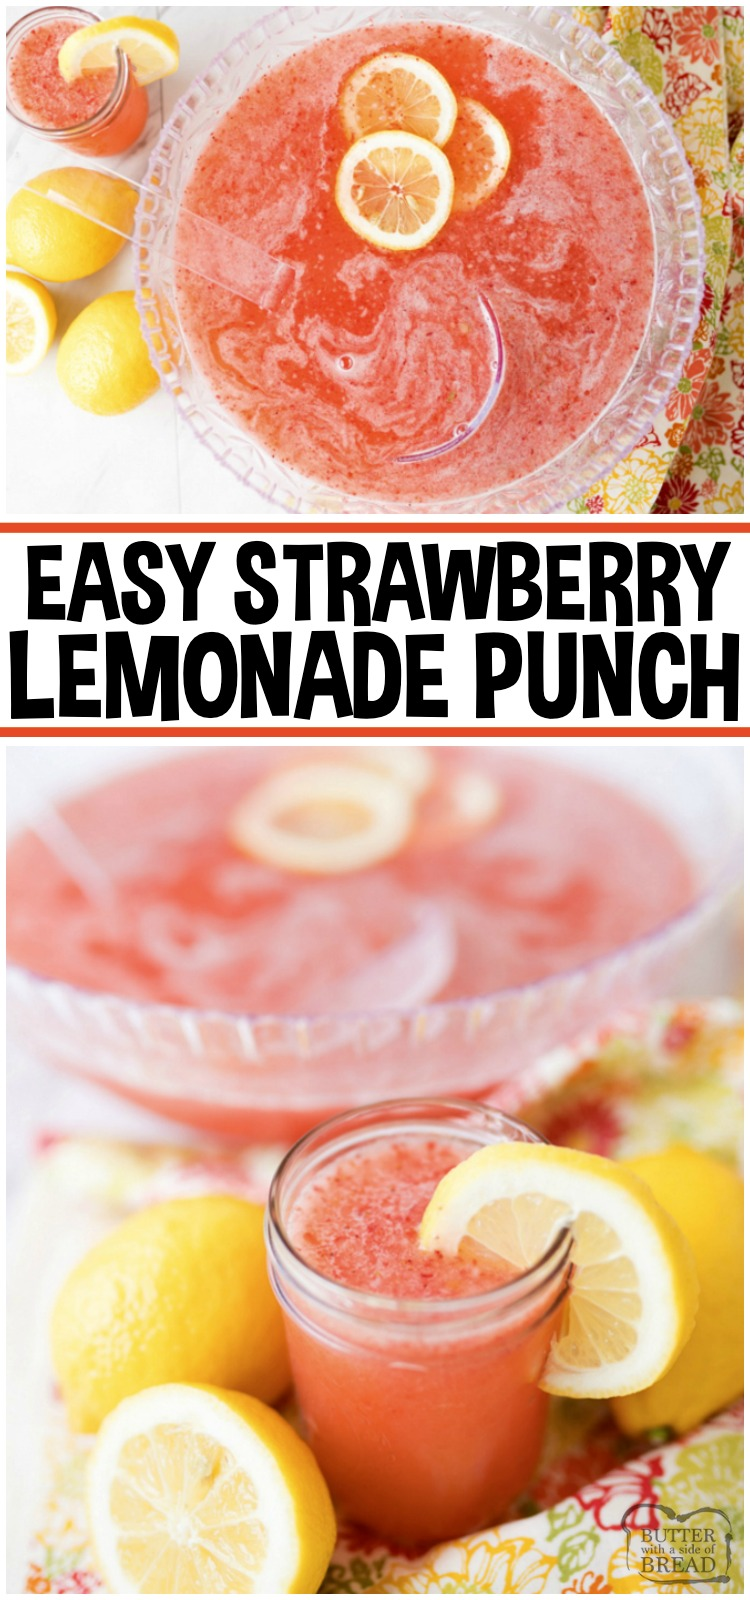 Strawberry Lemonade Punch is a simple & delicious 3 ingredient party drink! This Strawberry Lemonade recipe is refreshing and a breeze to whip together. Lemon-Lime Soda, powdered lemonade mix and frozen strawberries is all you need to make this sparkling party punch. #punch #lemonade #strawberry #party #beverage #mocktail #recipe from BUTTER WITH A SIDE OF BREAD